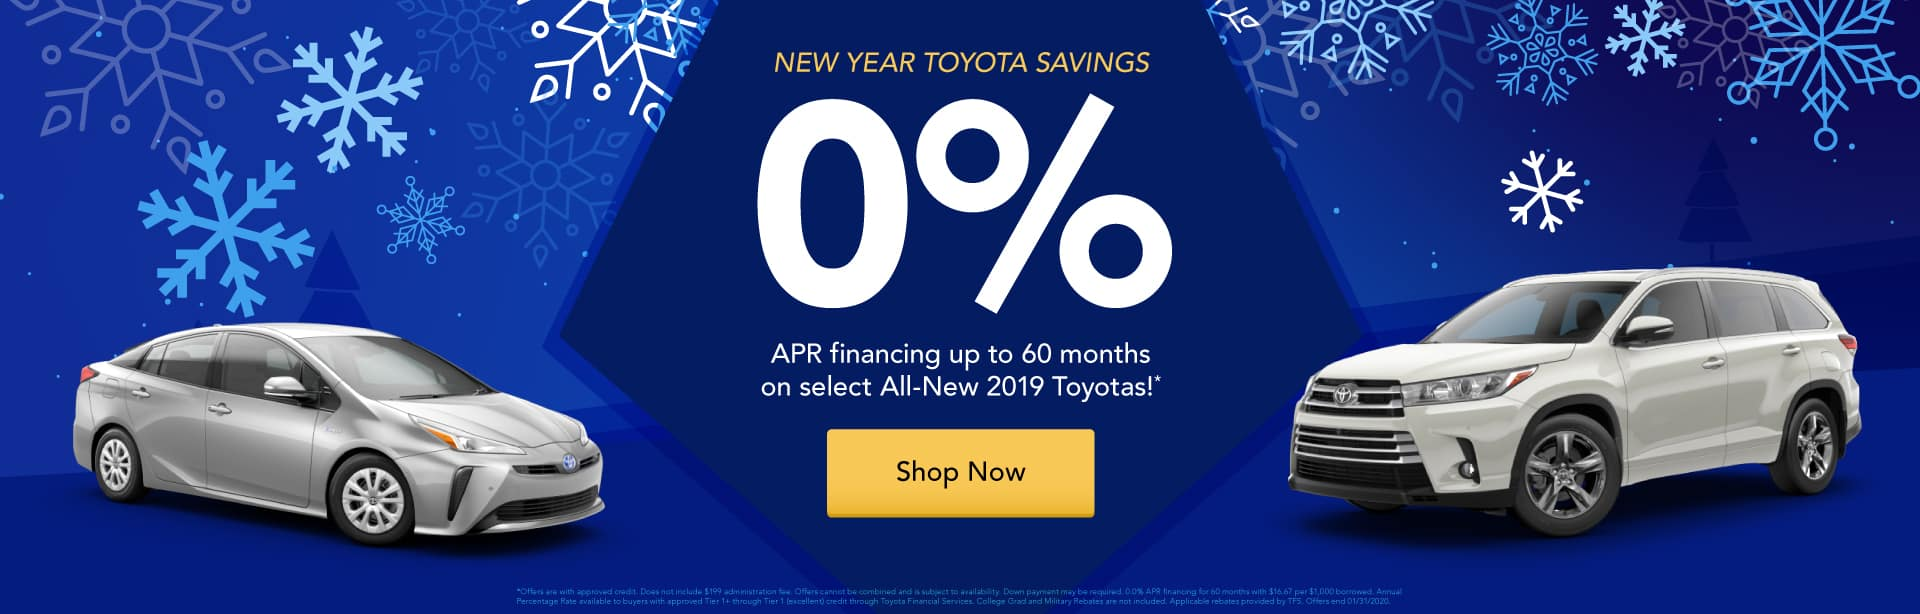 0% APR special financing for up to 60 months on select All-New 2019 Toyotas!*